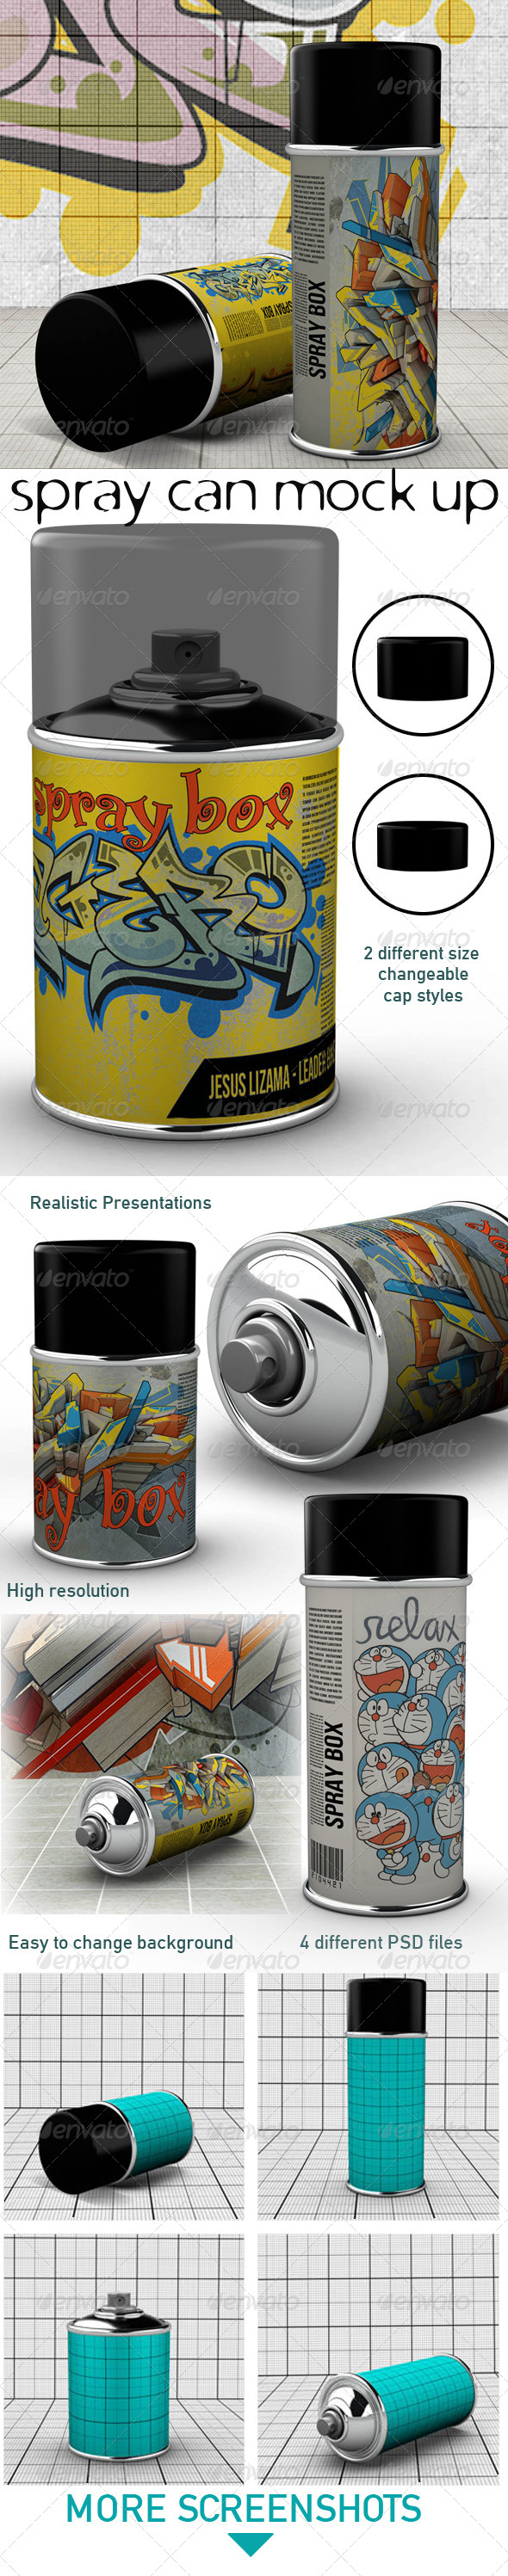 GraphicRiver Spray Can Mock Up 5905495